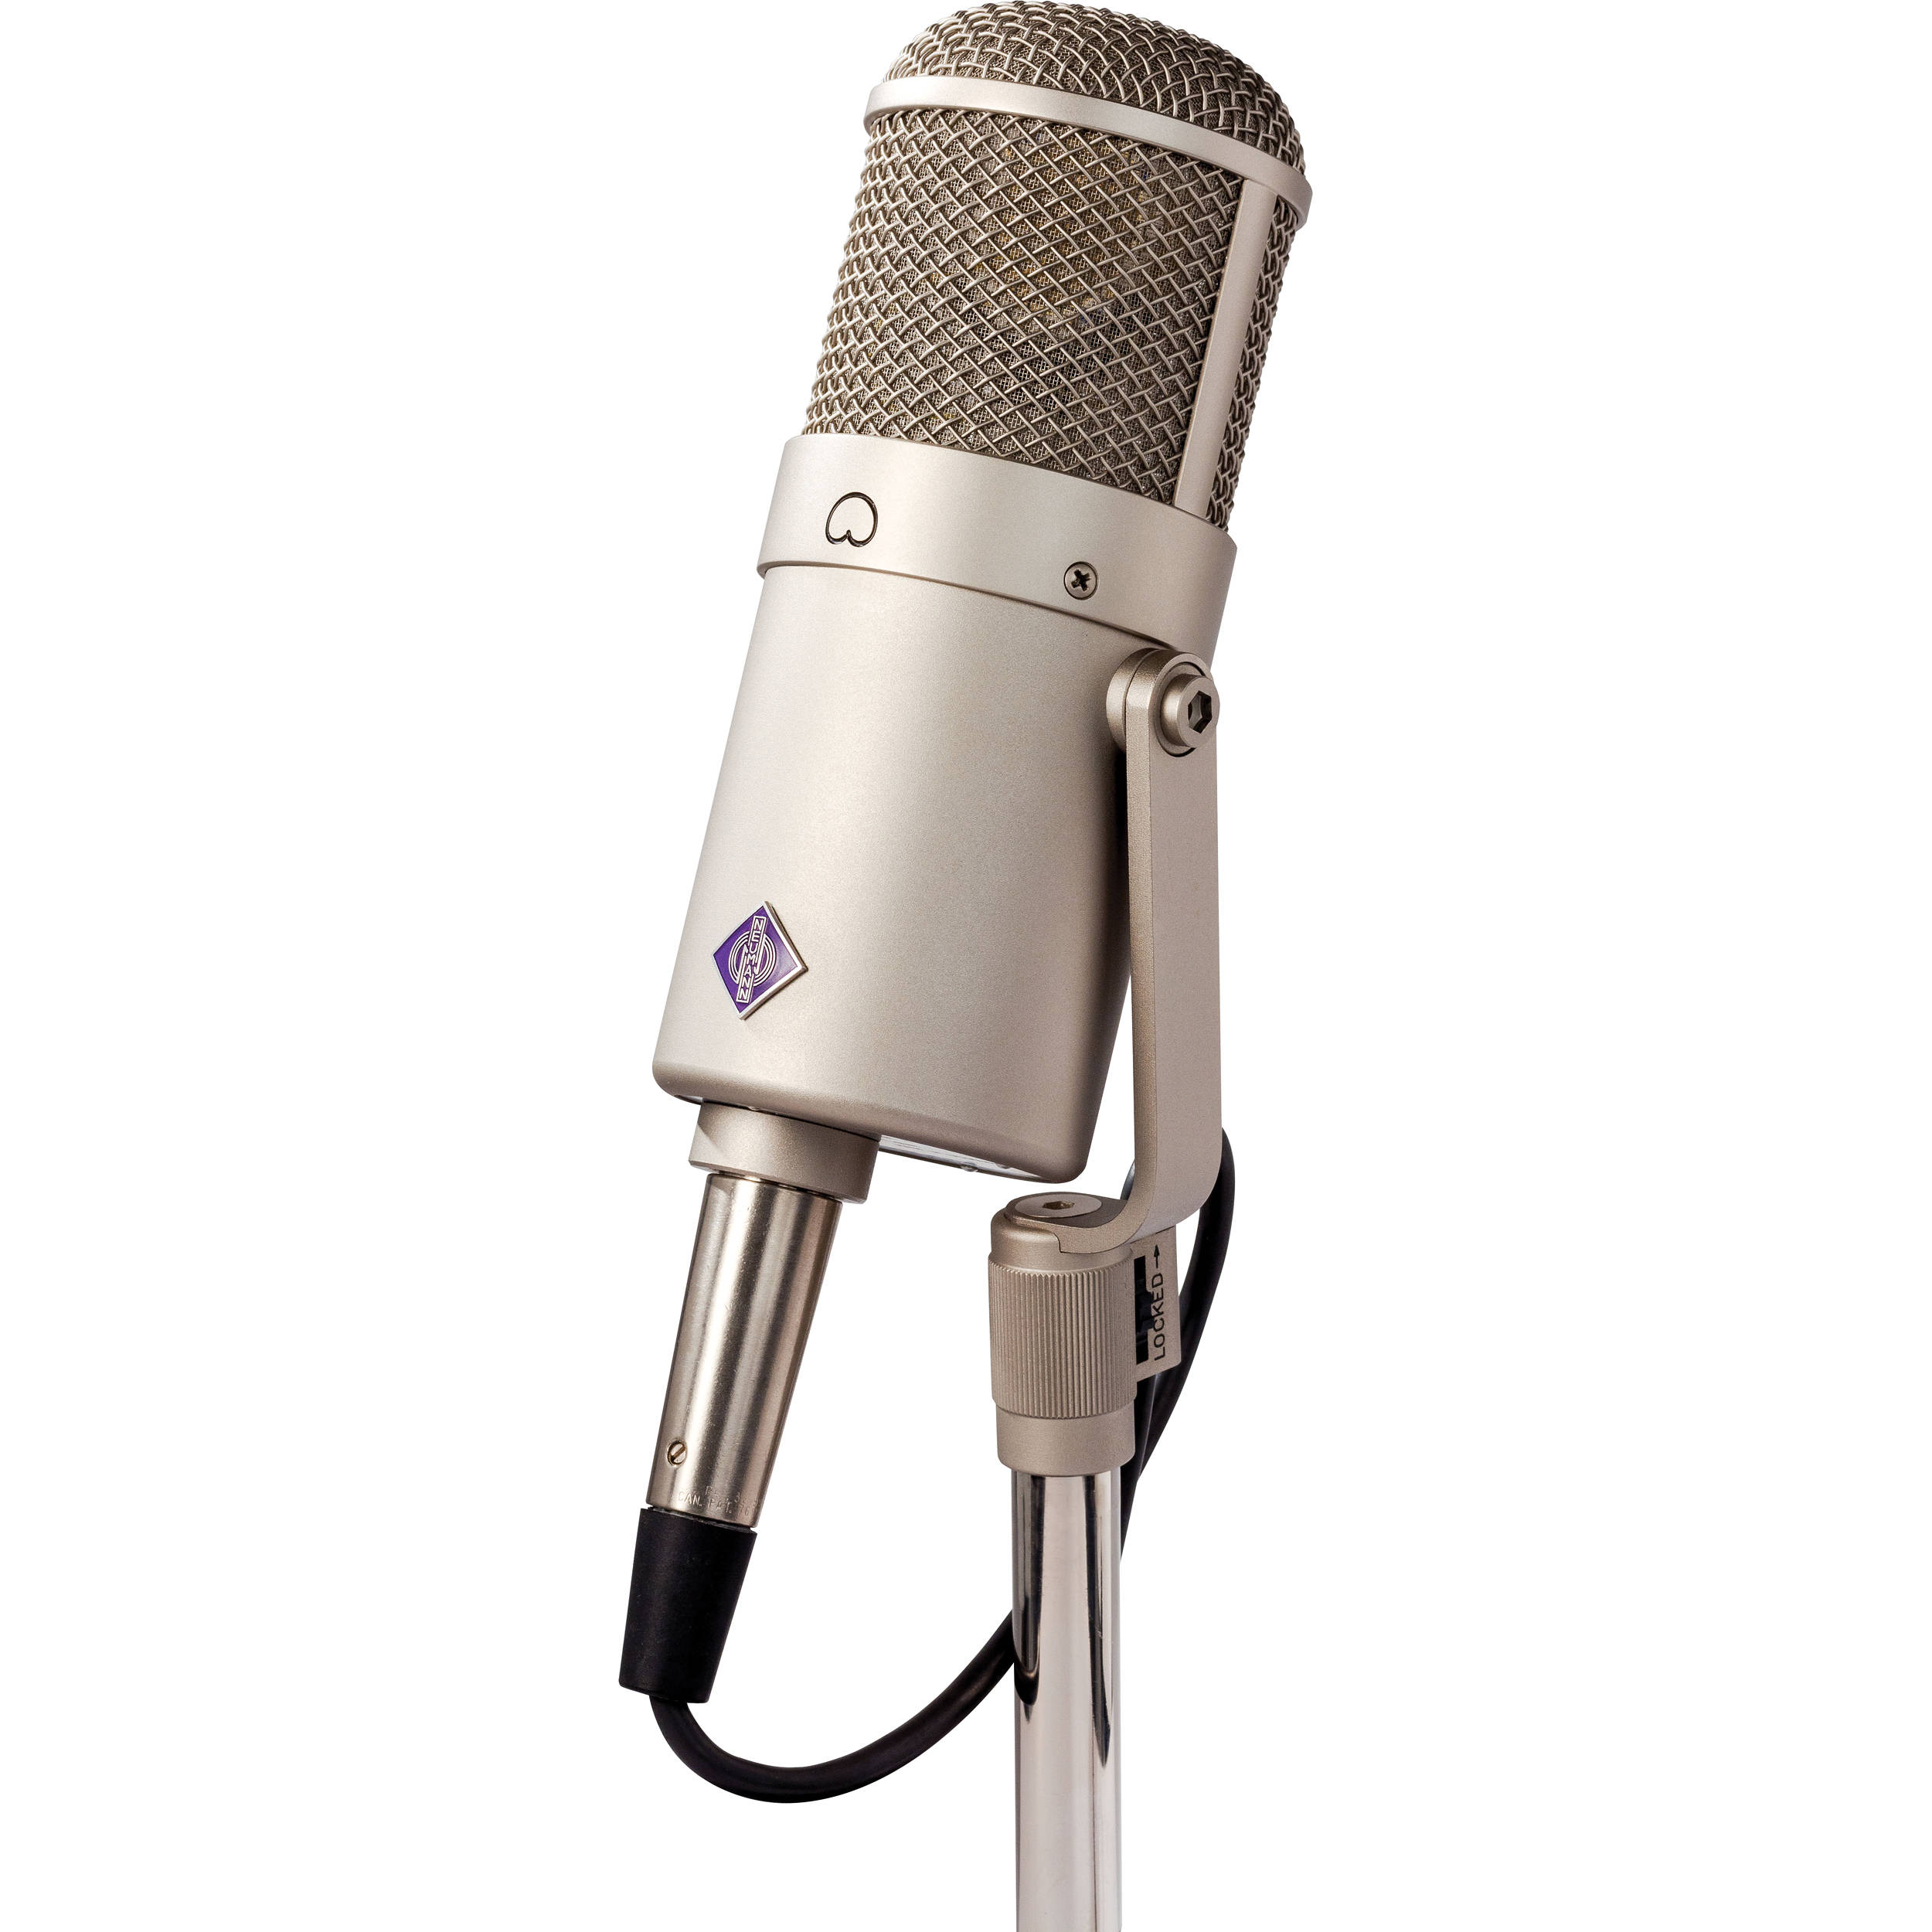 best condenser microphones for a home recording studio in 2018